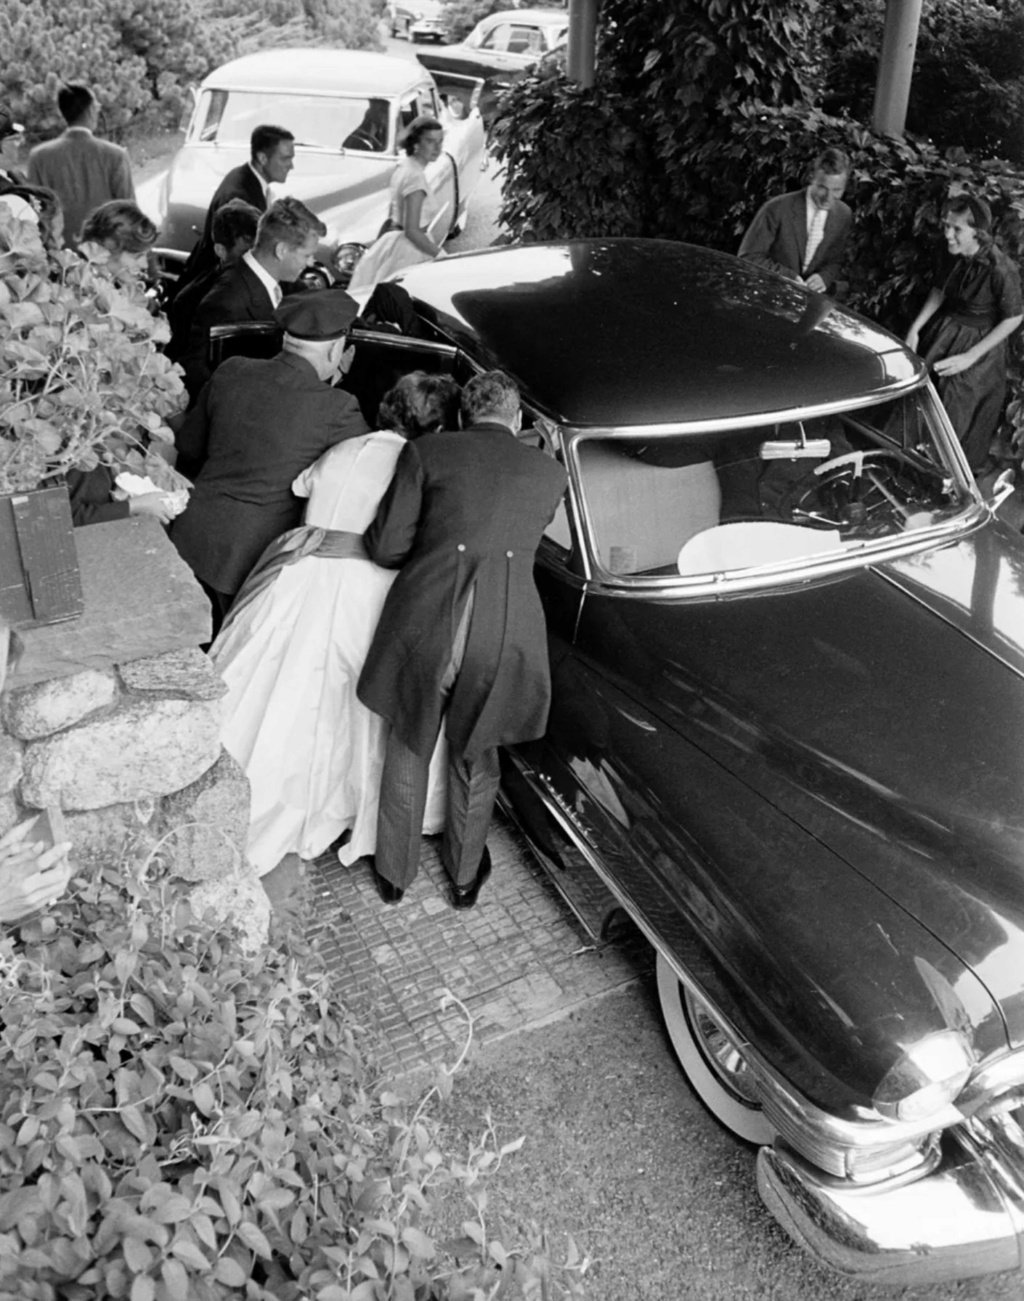 fifties & early sixties cars in situation - Vintage pics - Page 4 12619710